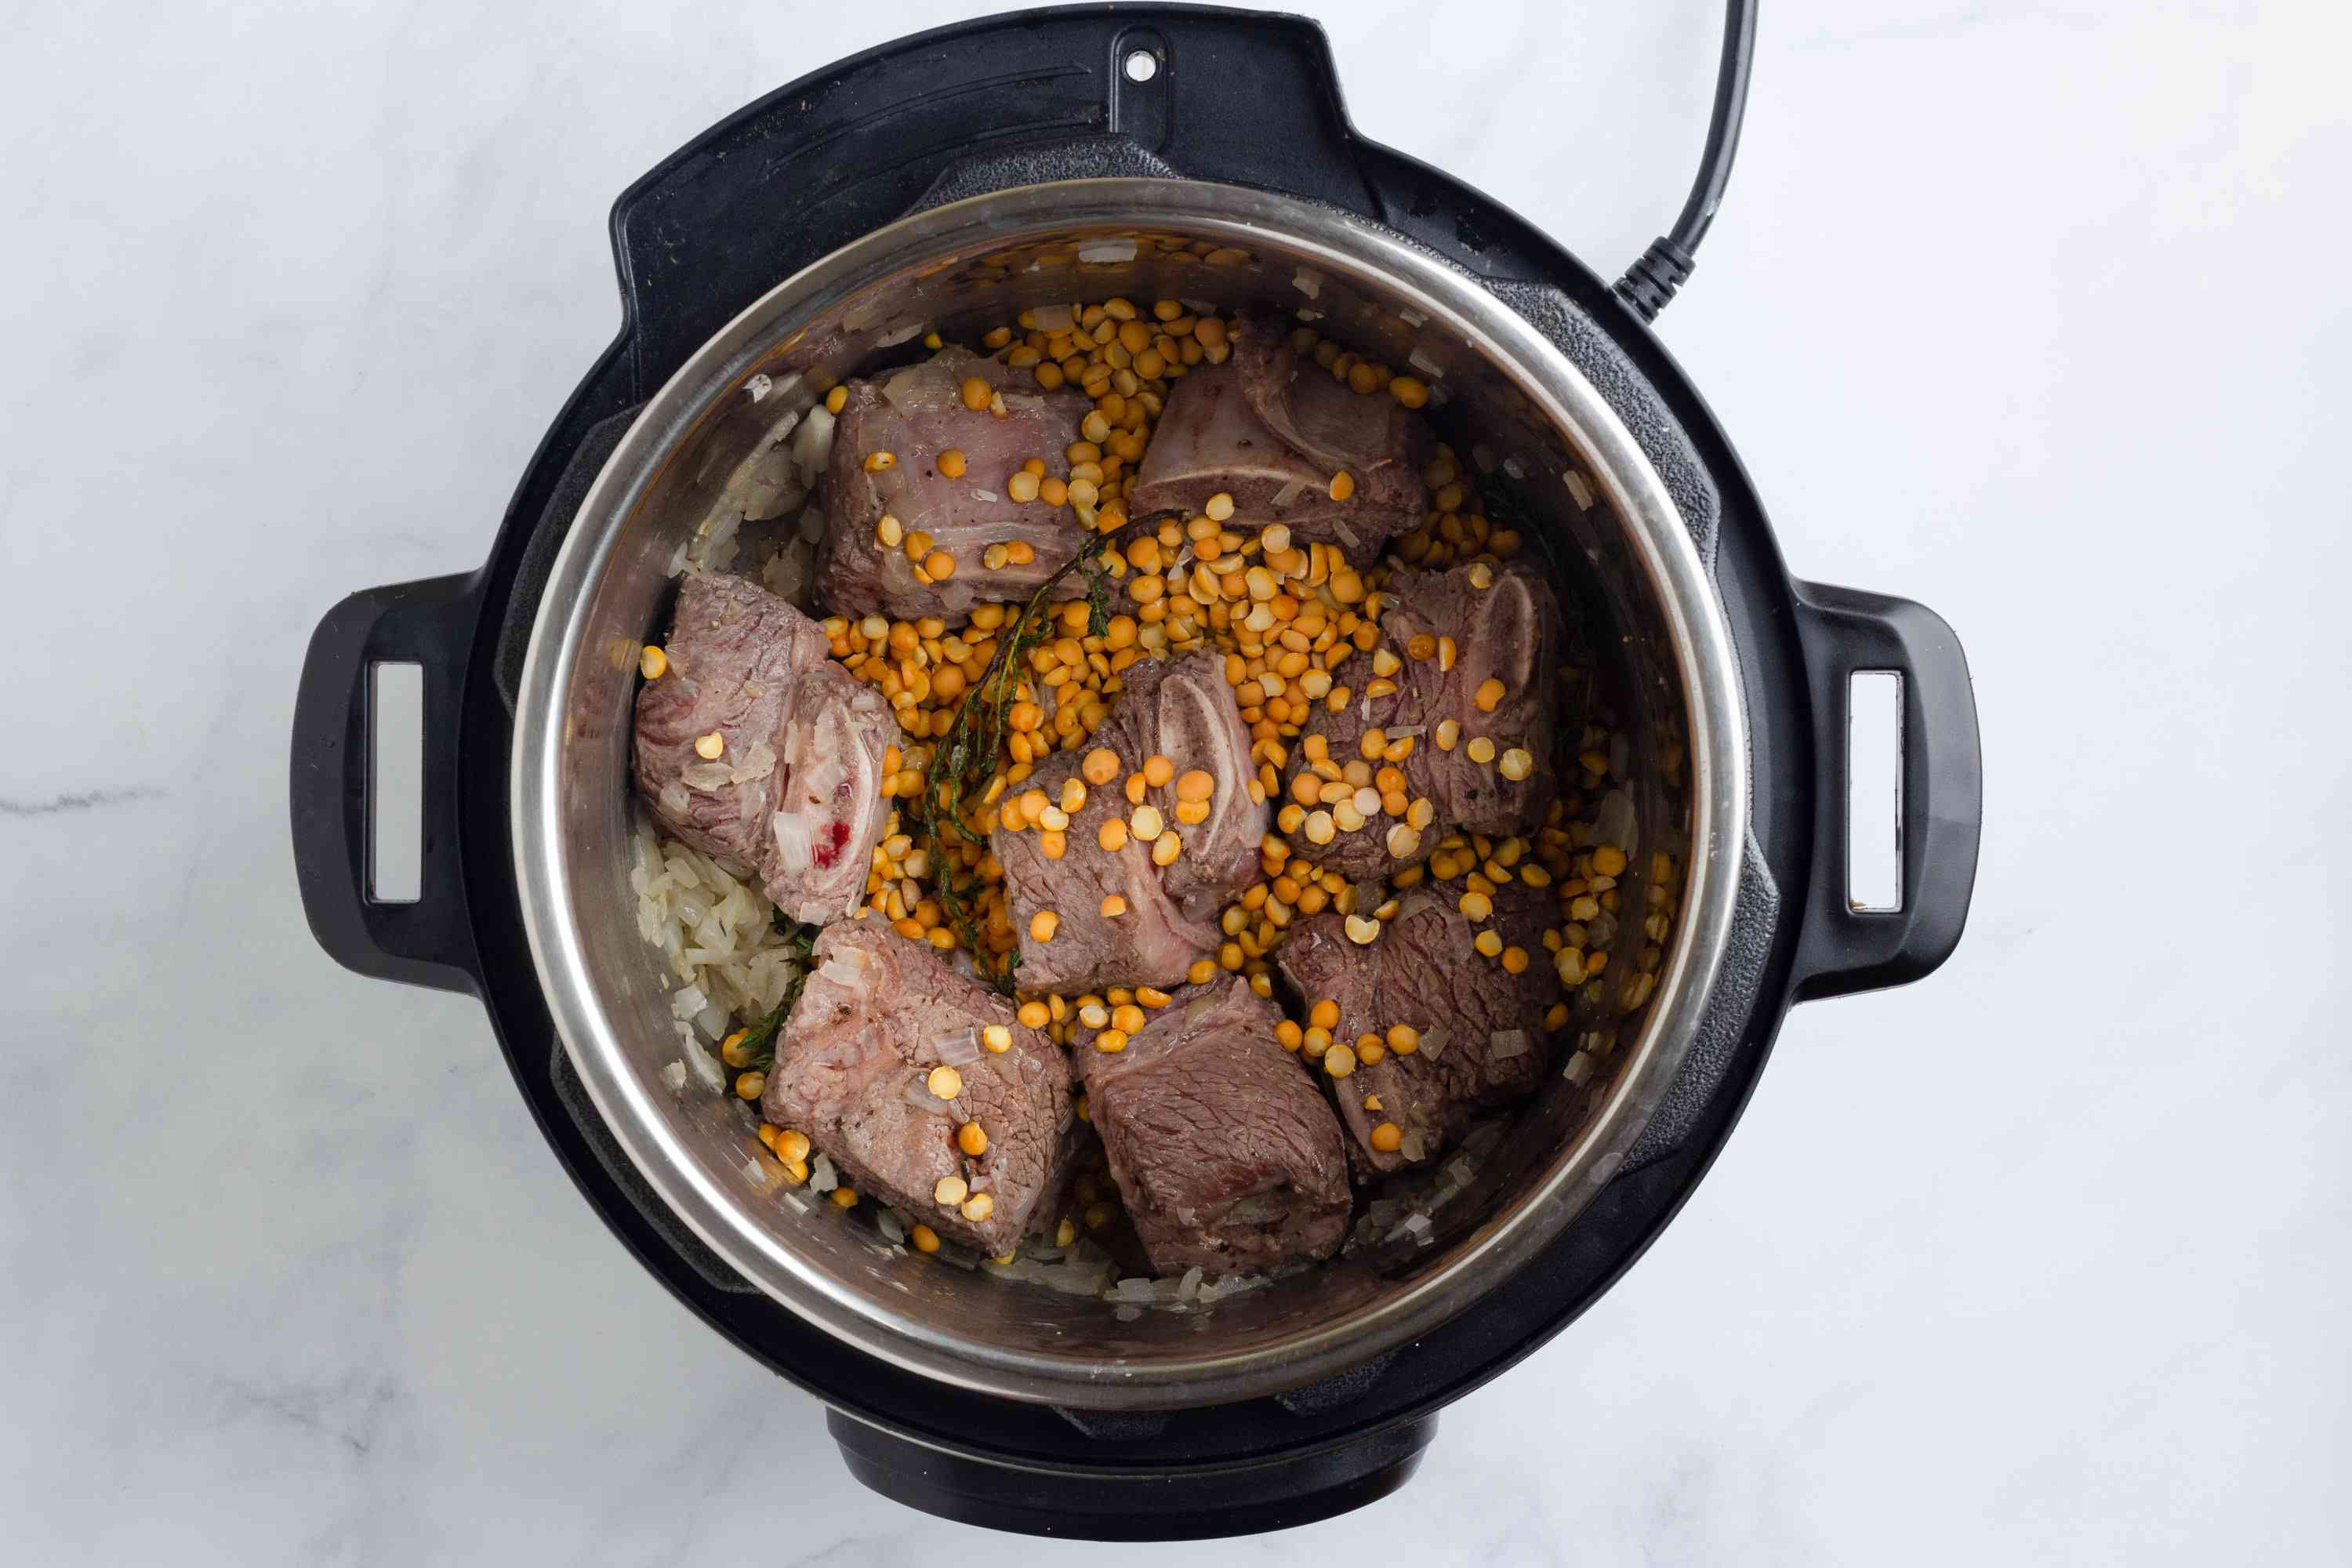 beef, with peas, onions and herbs in the pressure cooker